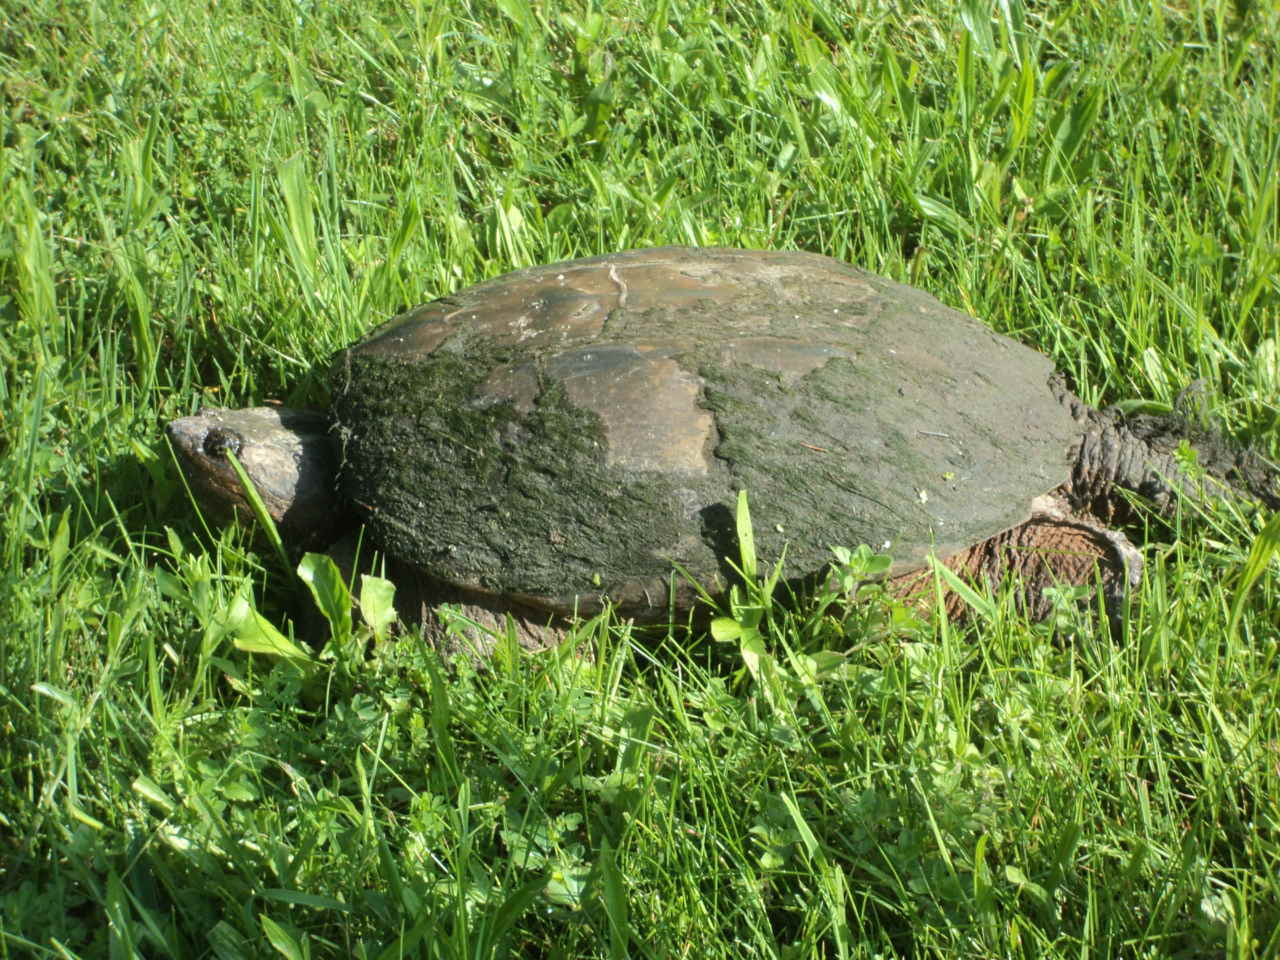 Summer at Pine River: Every June at Pine River, turtles emerge from our large pond and climb the steep grassy hill to find a spot to dig and lay their eggs under ground.  Students spotted this turtle searching for a suitable spot to lay her eggs.  We have been monitoring the area eagerly waiting for her babies to hatch and crawl the long journey back to the pond.